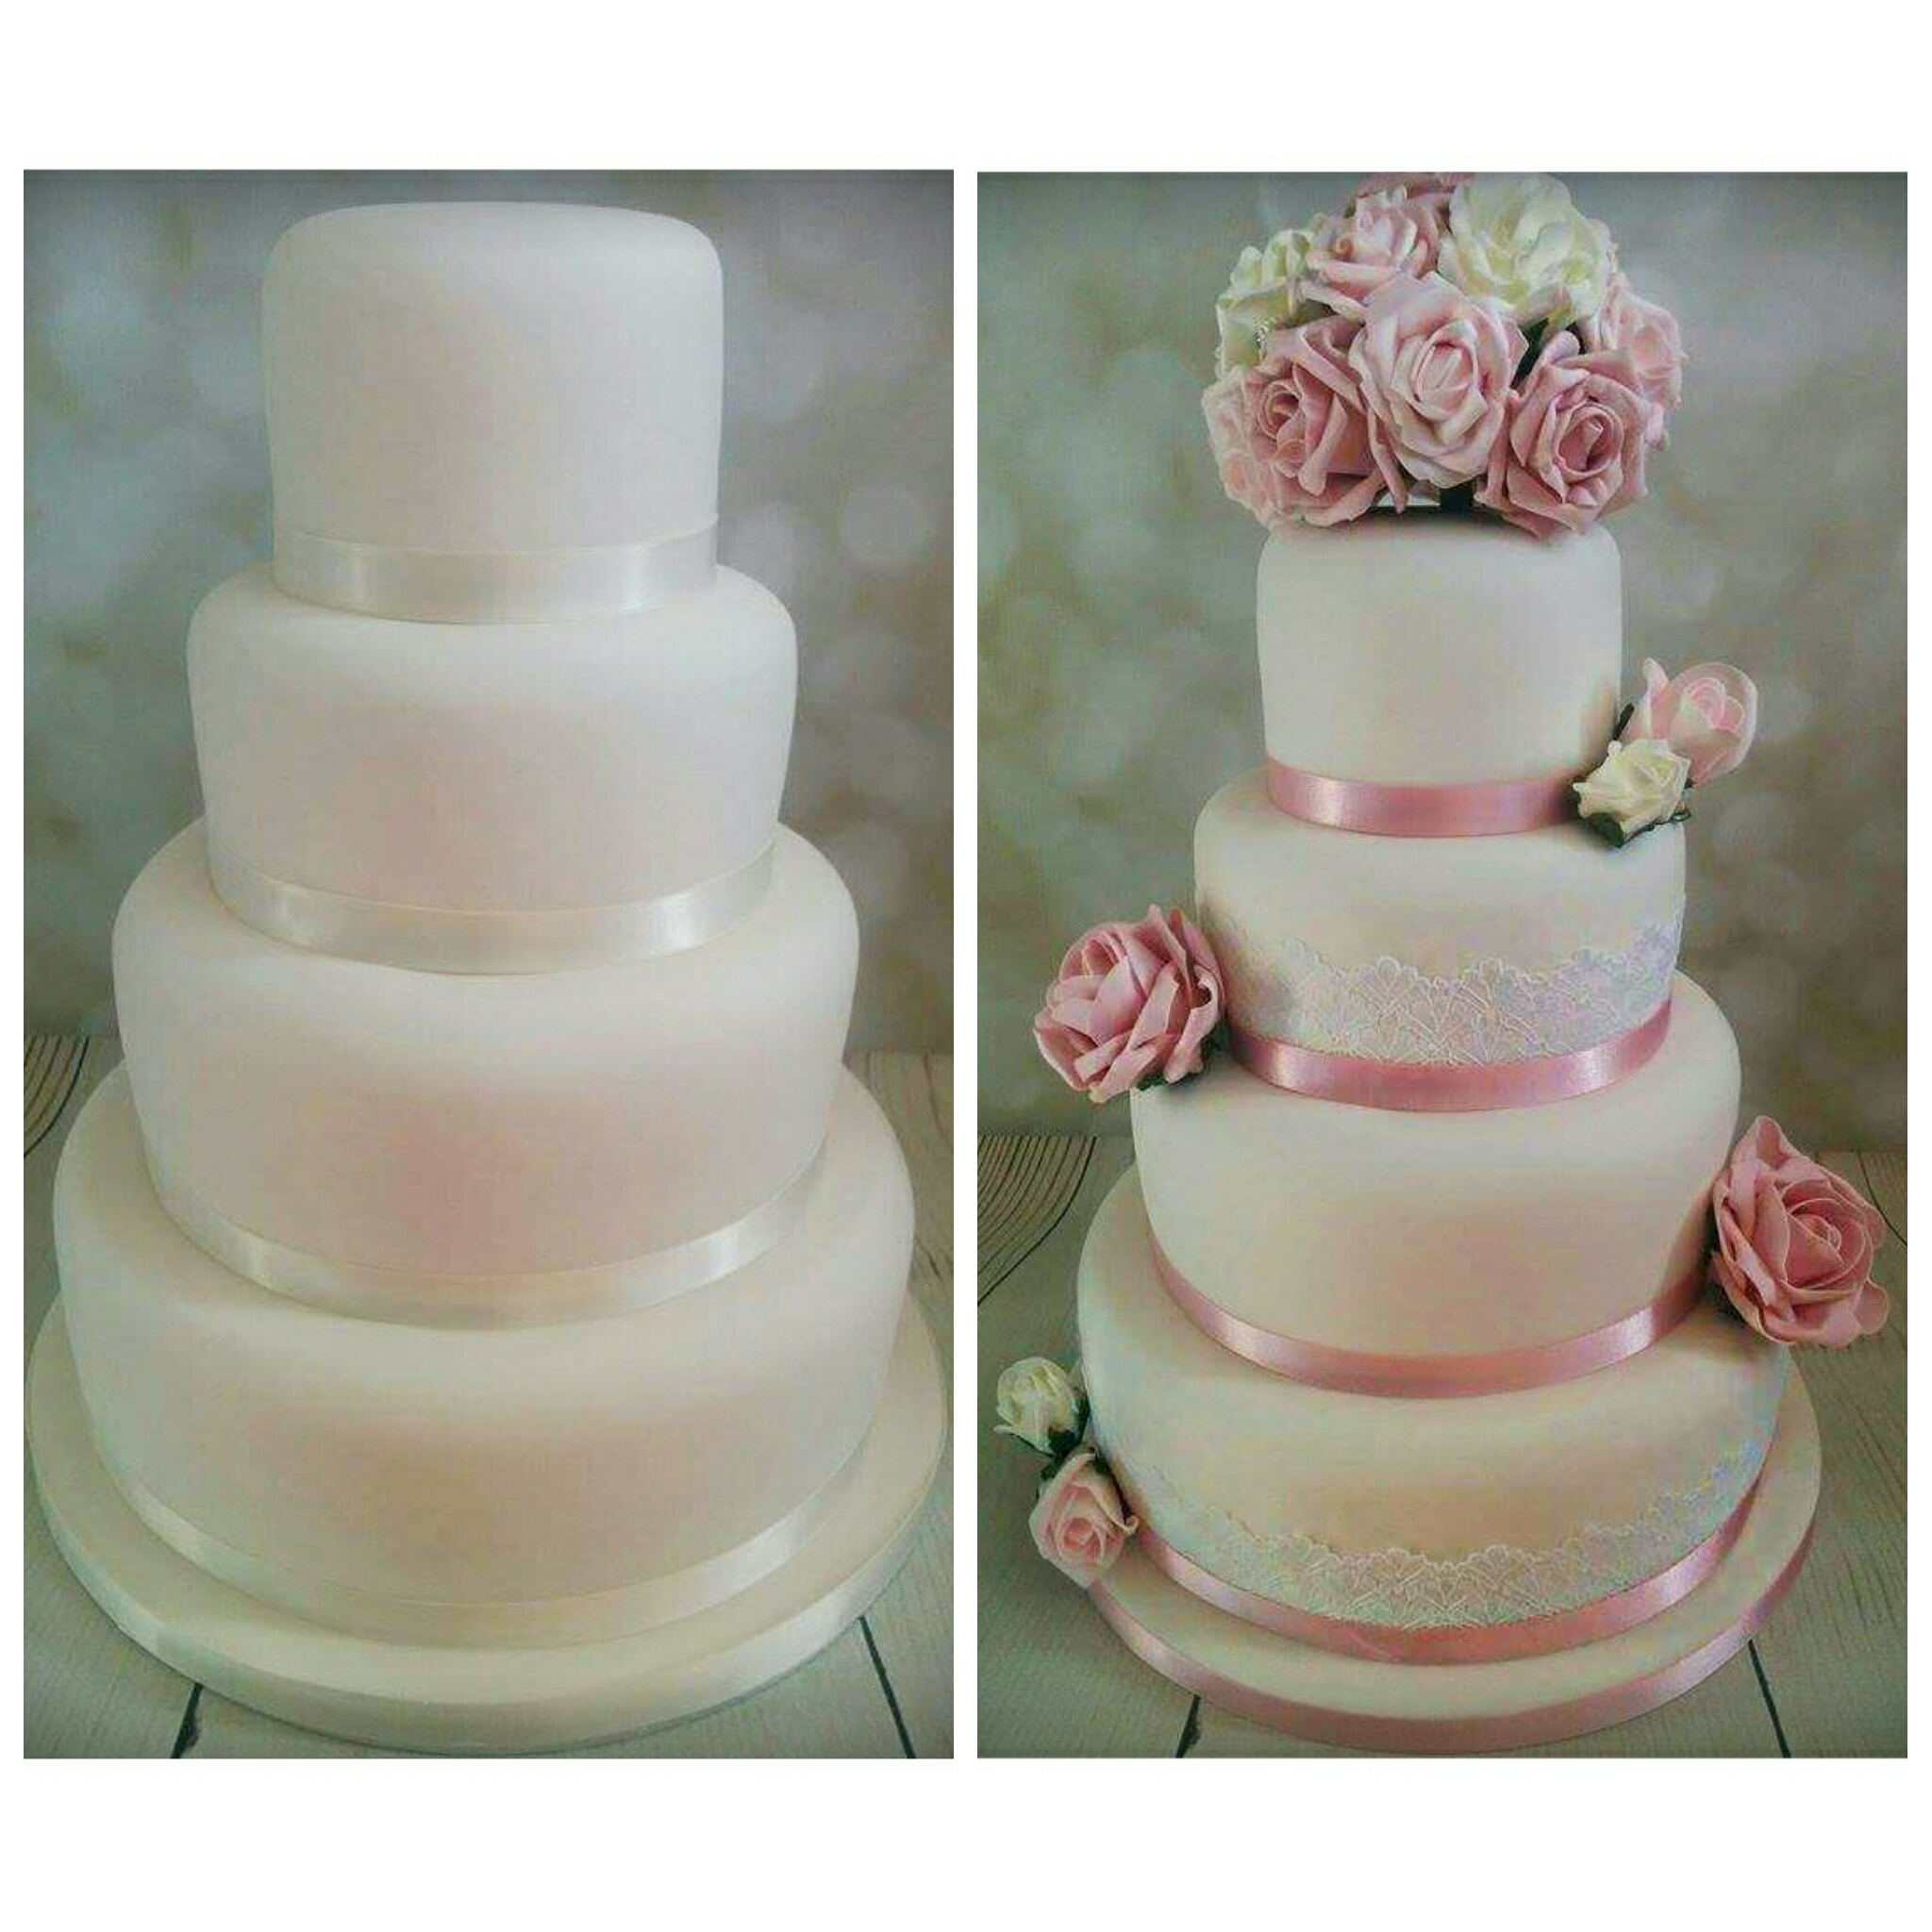 Decorate your own wedding cake!